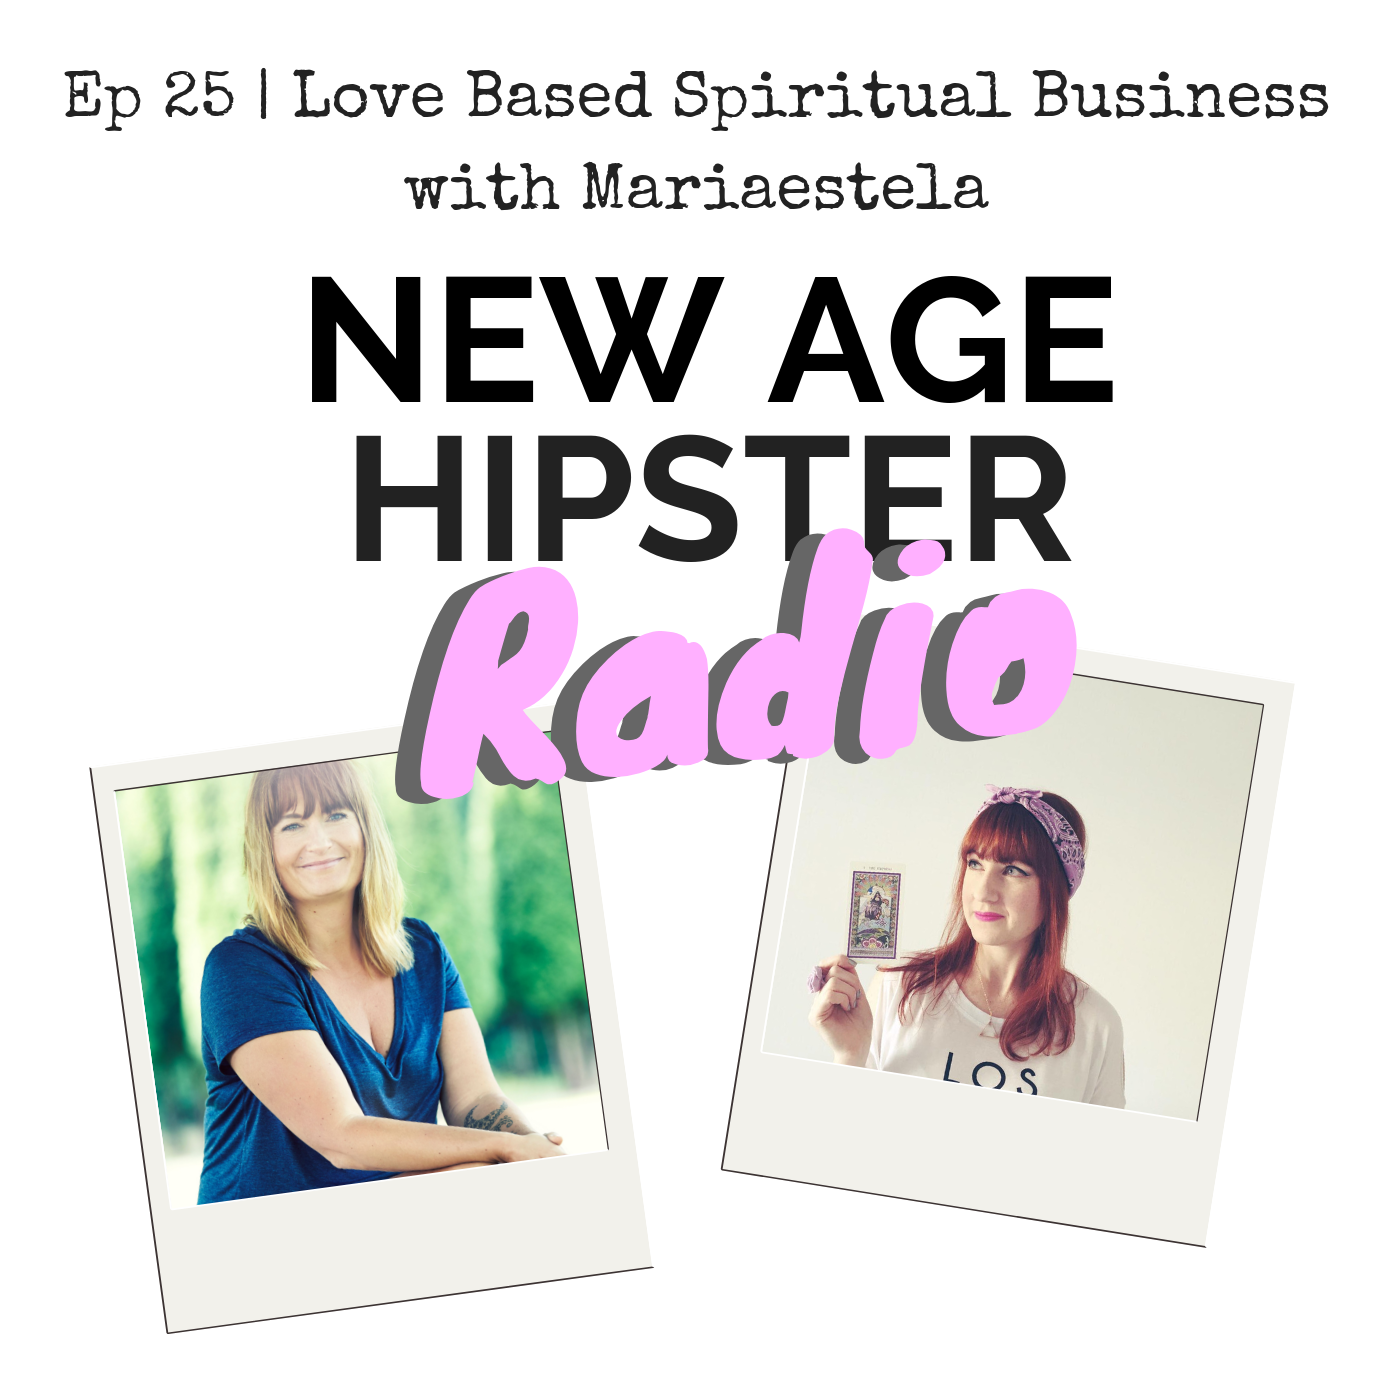 Mariaestela New Age Hipster Radio Podcast